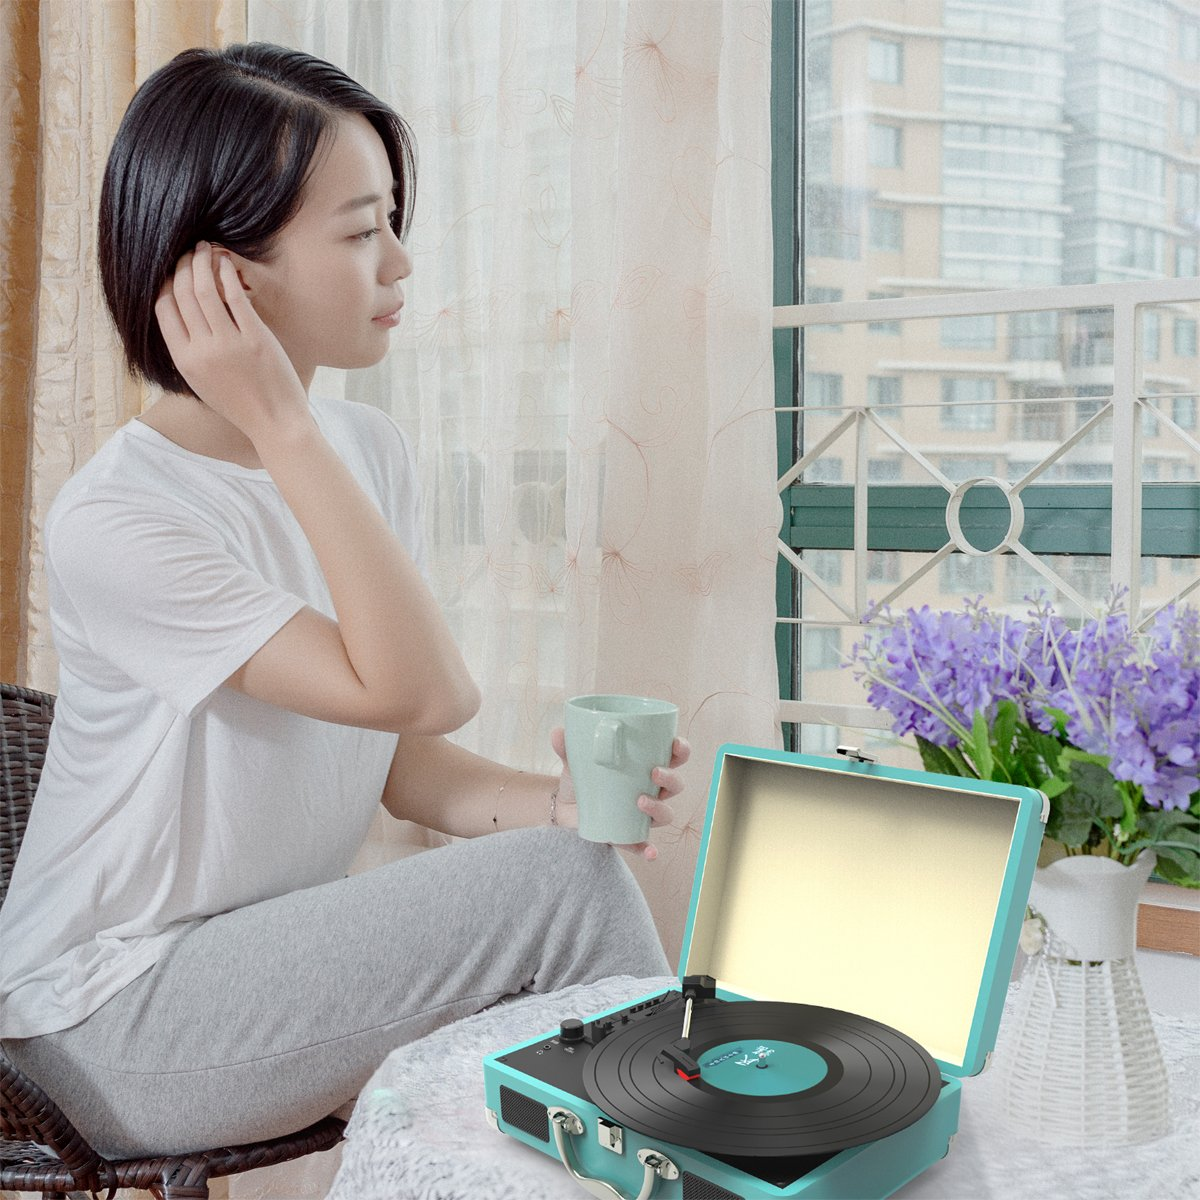 Record Player, MSTING Turntable Bluetooth for Vinyl Record 3 Speed with Two Dual Stereo Speakers Belt Drive Turntable with Headphone, RAC,USB/SD Card Recording by MSTING (Image #6)